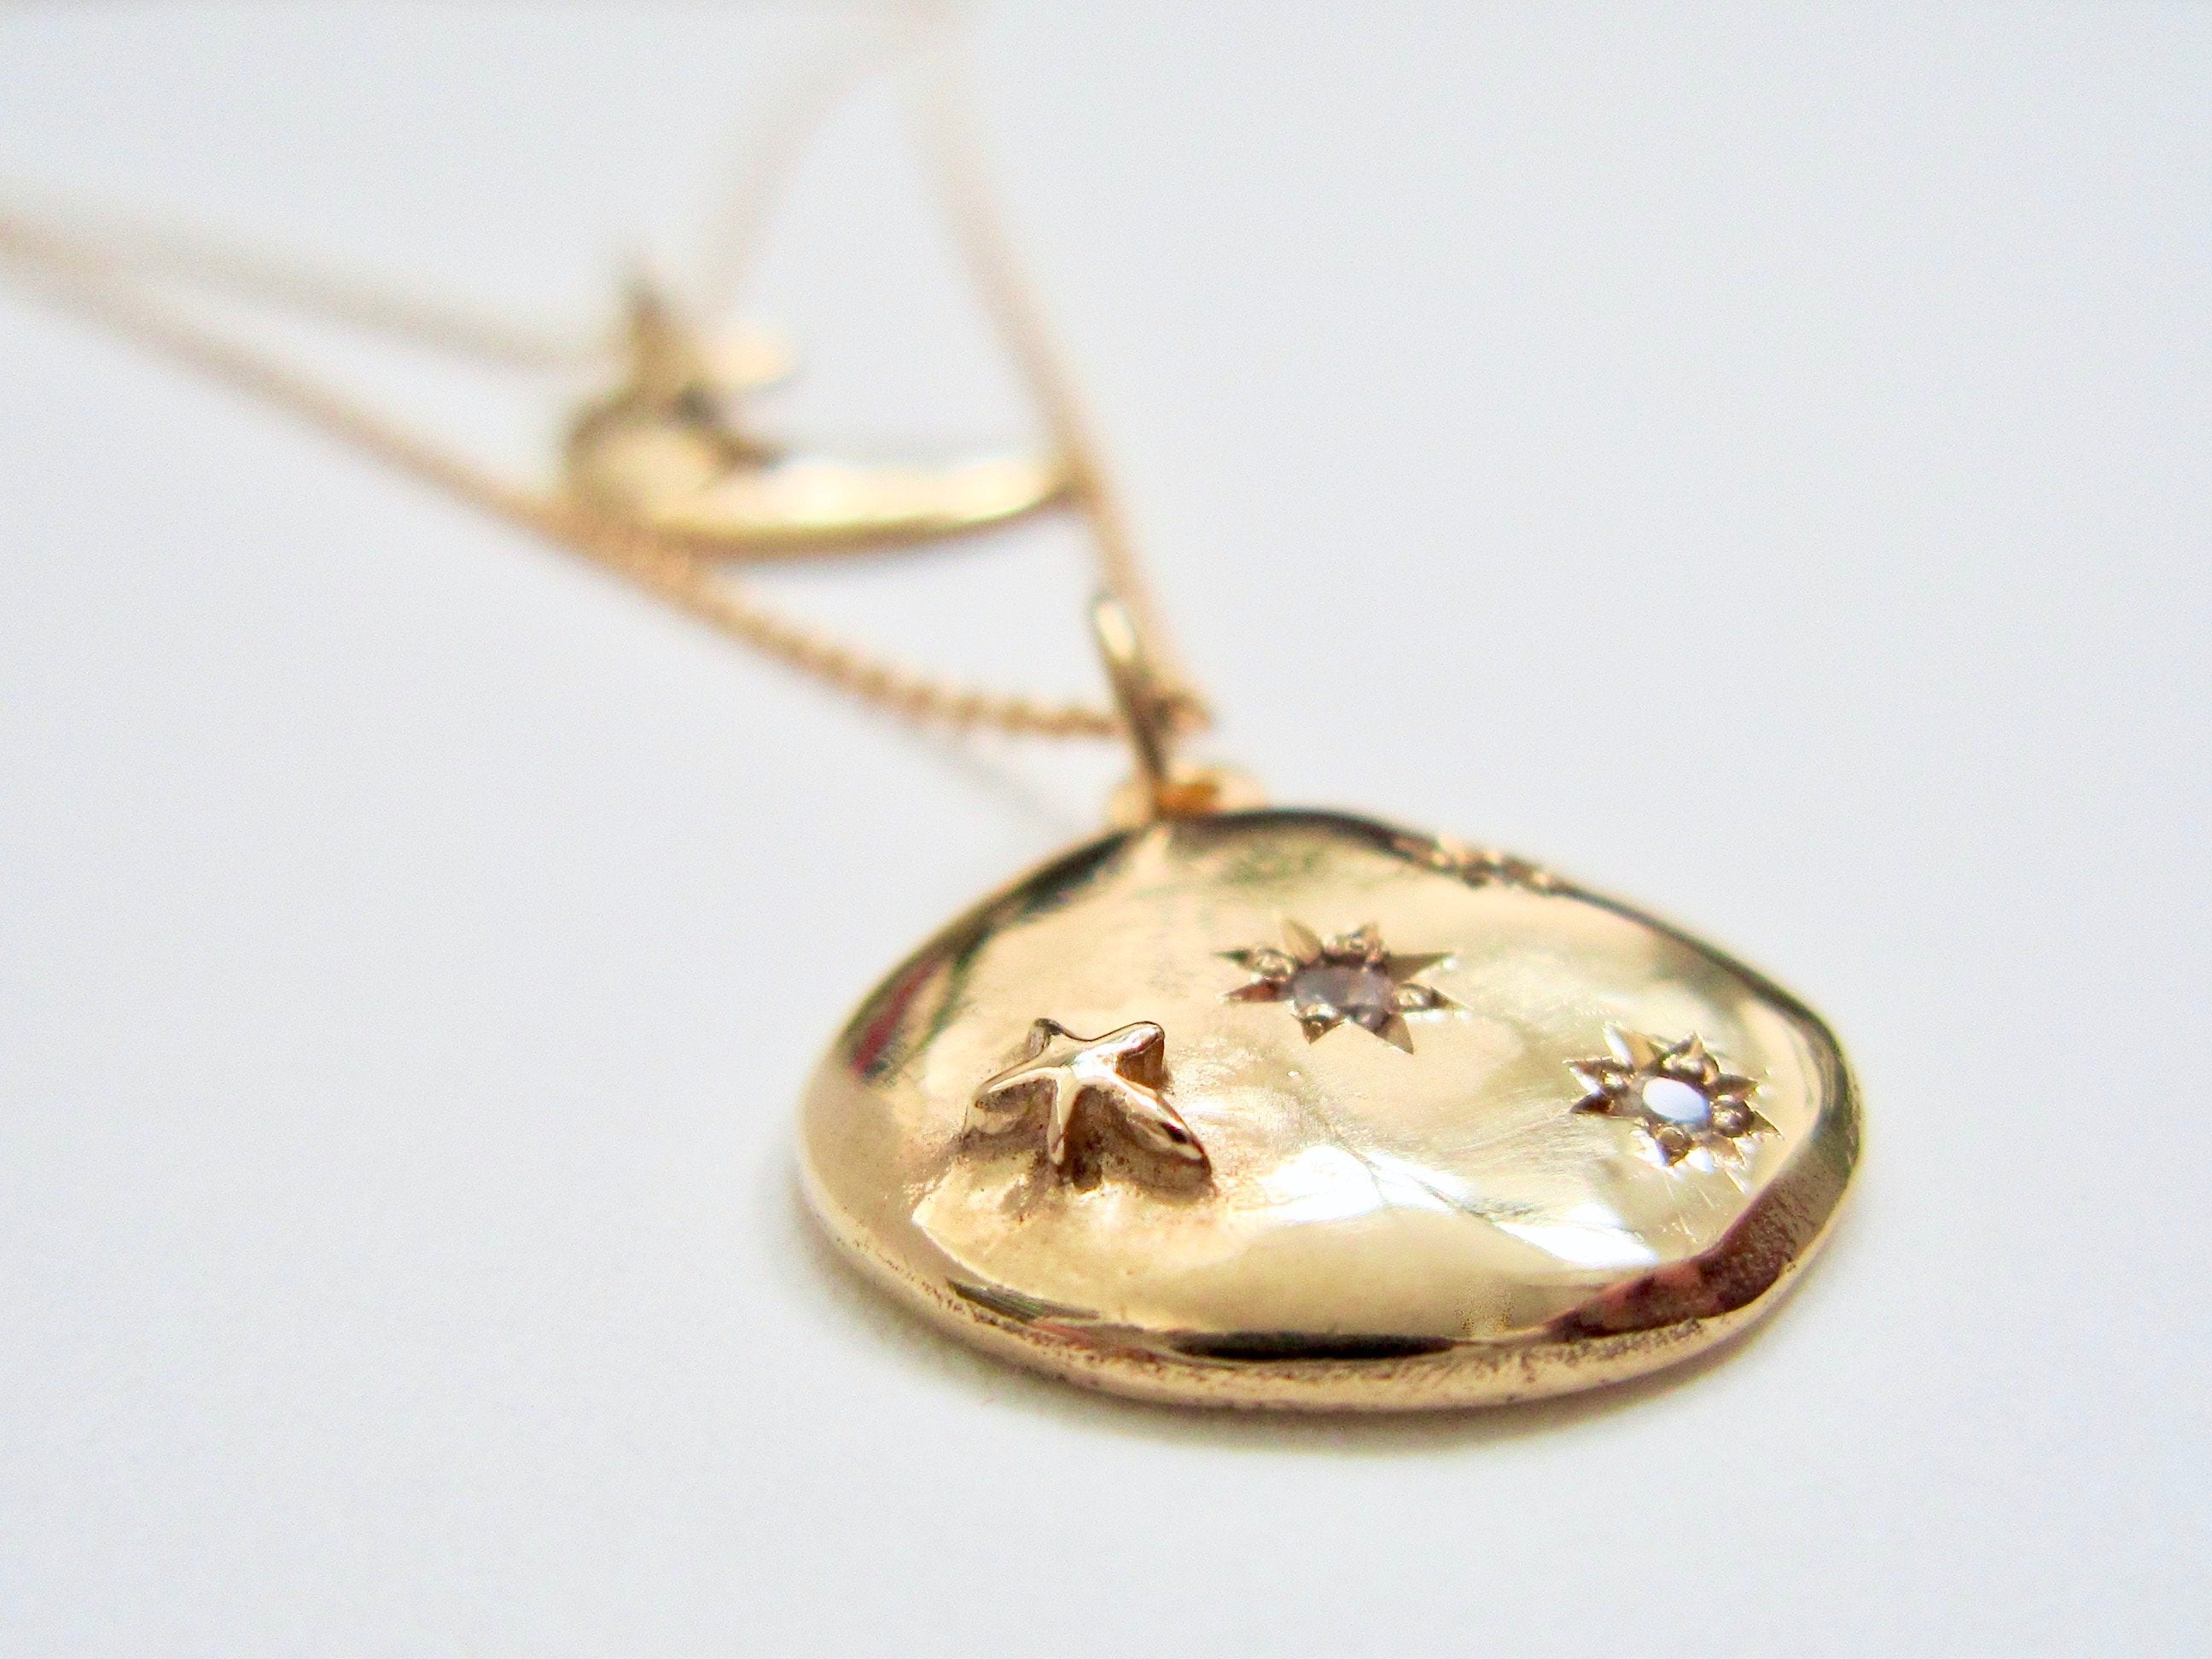 14K Gold Eclipse Necklace - Amanda Schoppel Art & Wax Carving